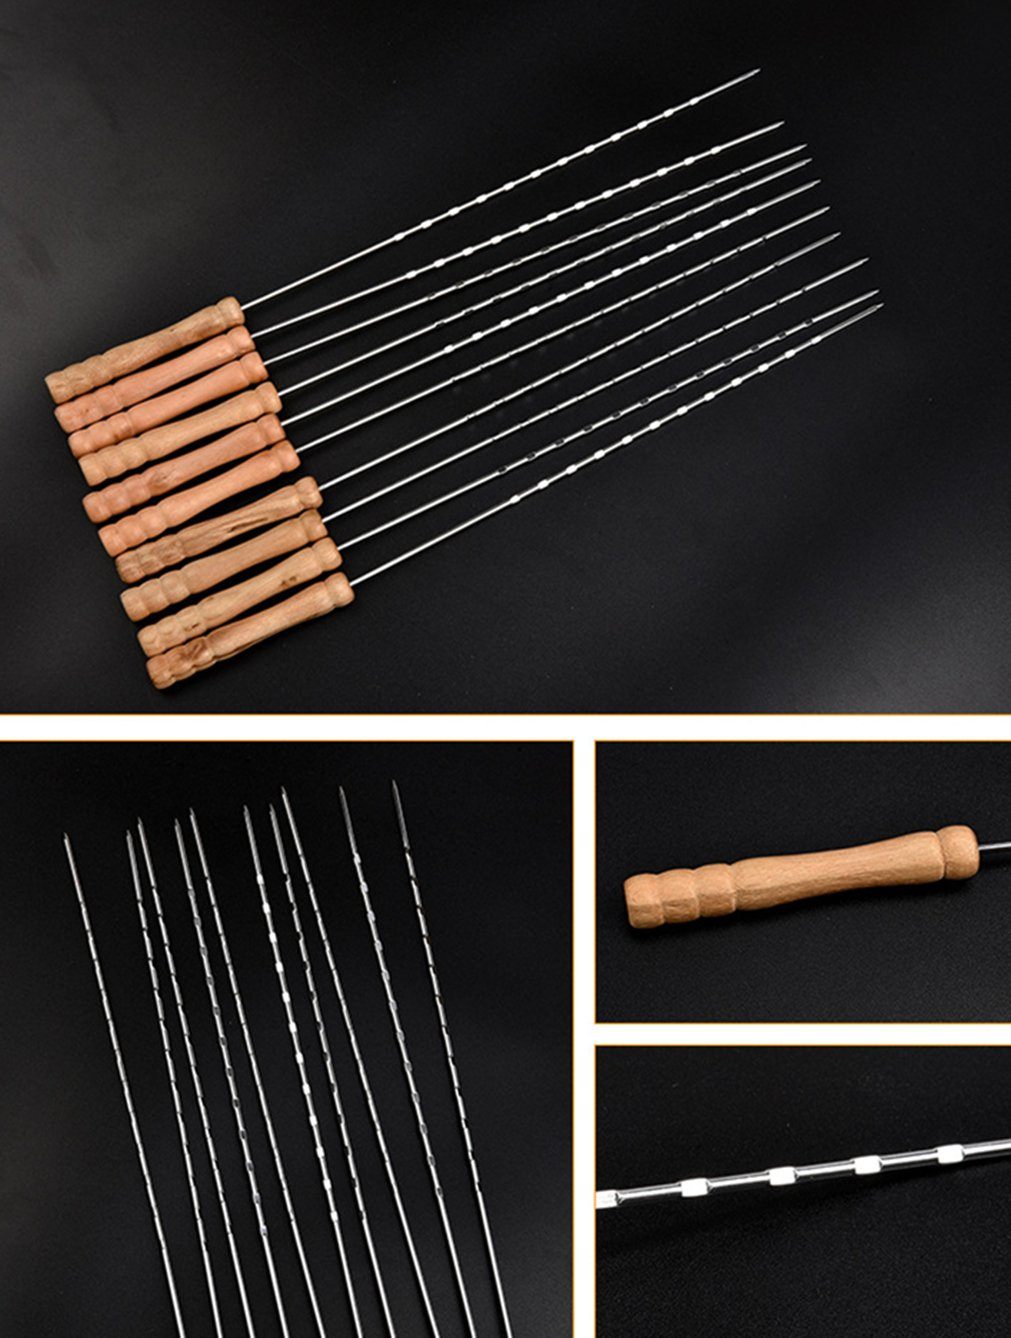 Wide BBQ Kabob Grilling Sticks with Wooden Handle to Protect Your Hands Holzsammlung/® 10 Pcs Stainless Steel Barbecue Skewers Set